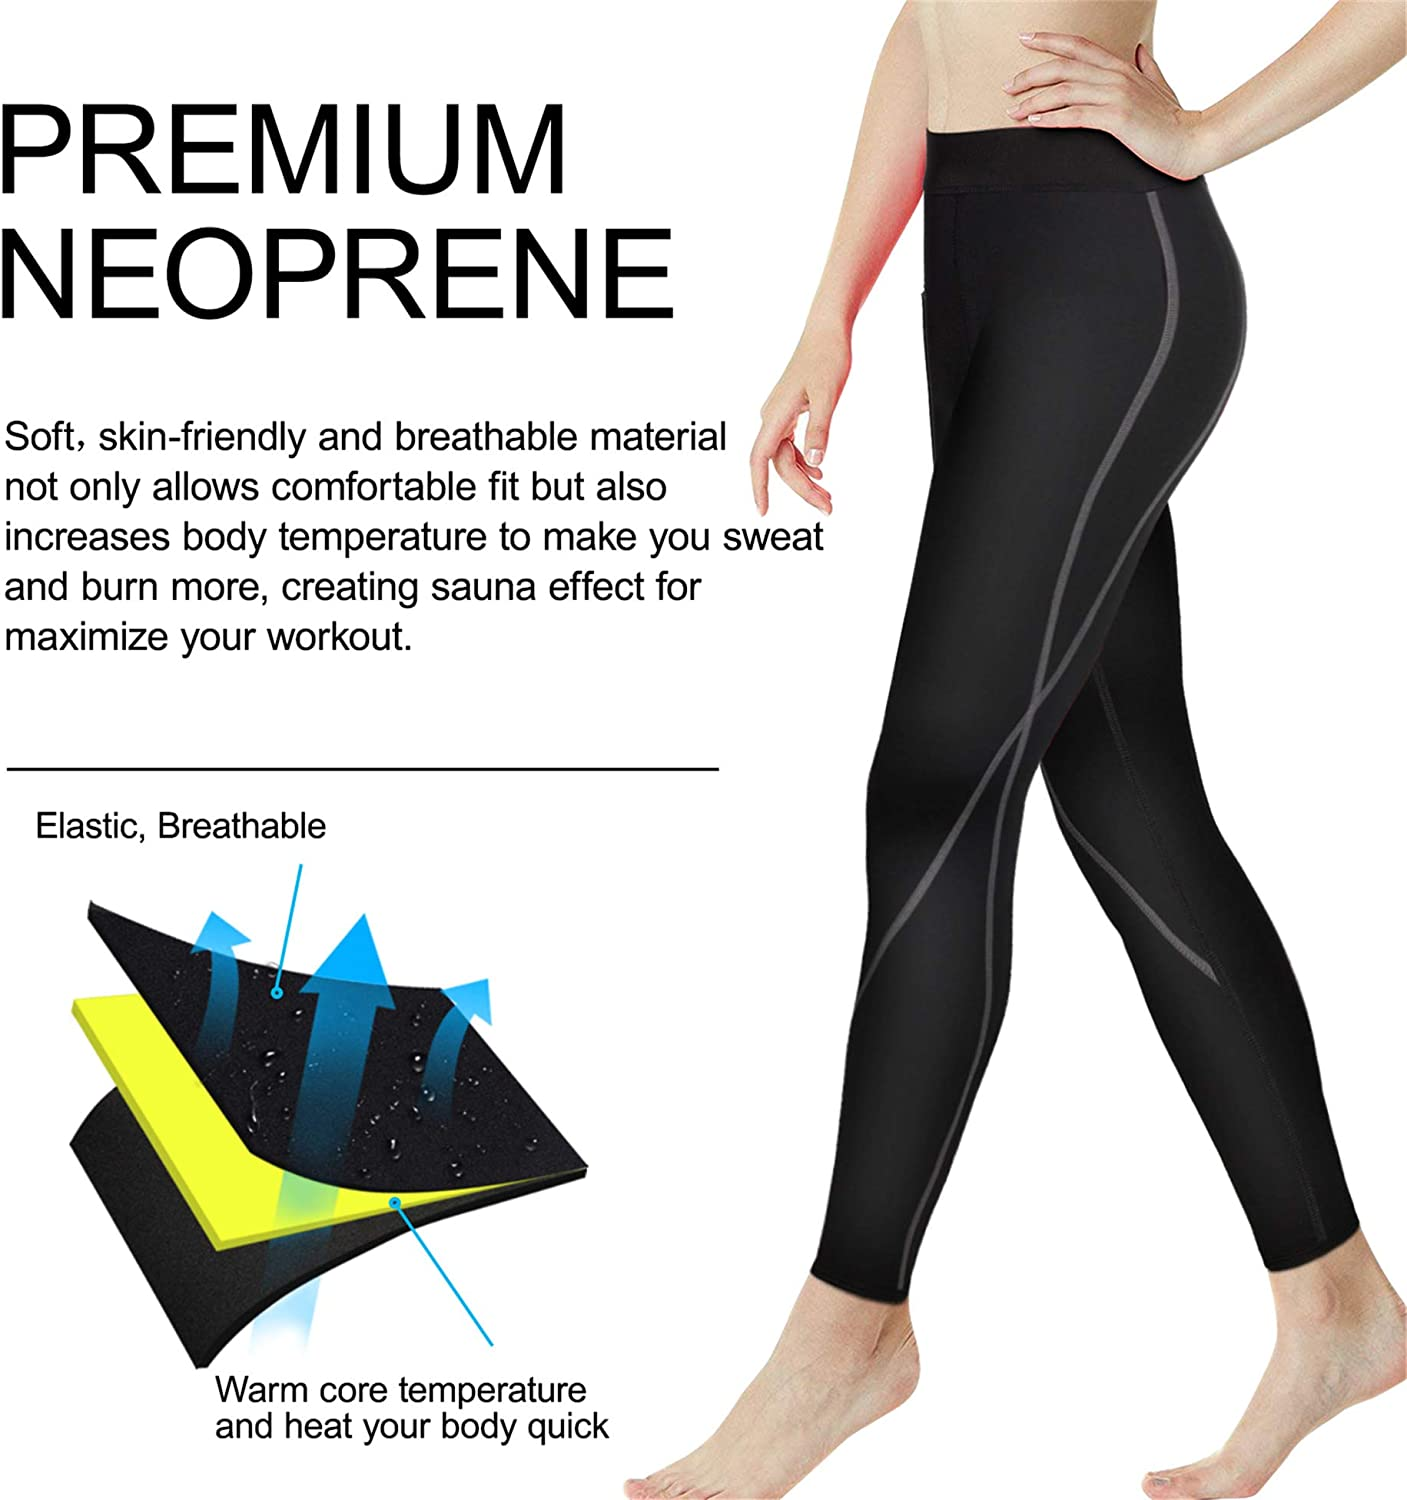 Wonderience Sauna Suit for Men Sauna Shorts Sweat Slimming Neoprene Waist Trainer Weight Loss Hot Shaper Workout Pants Shorts Thigh